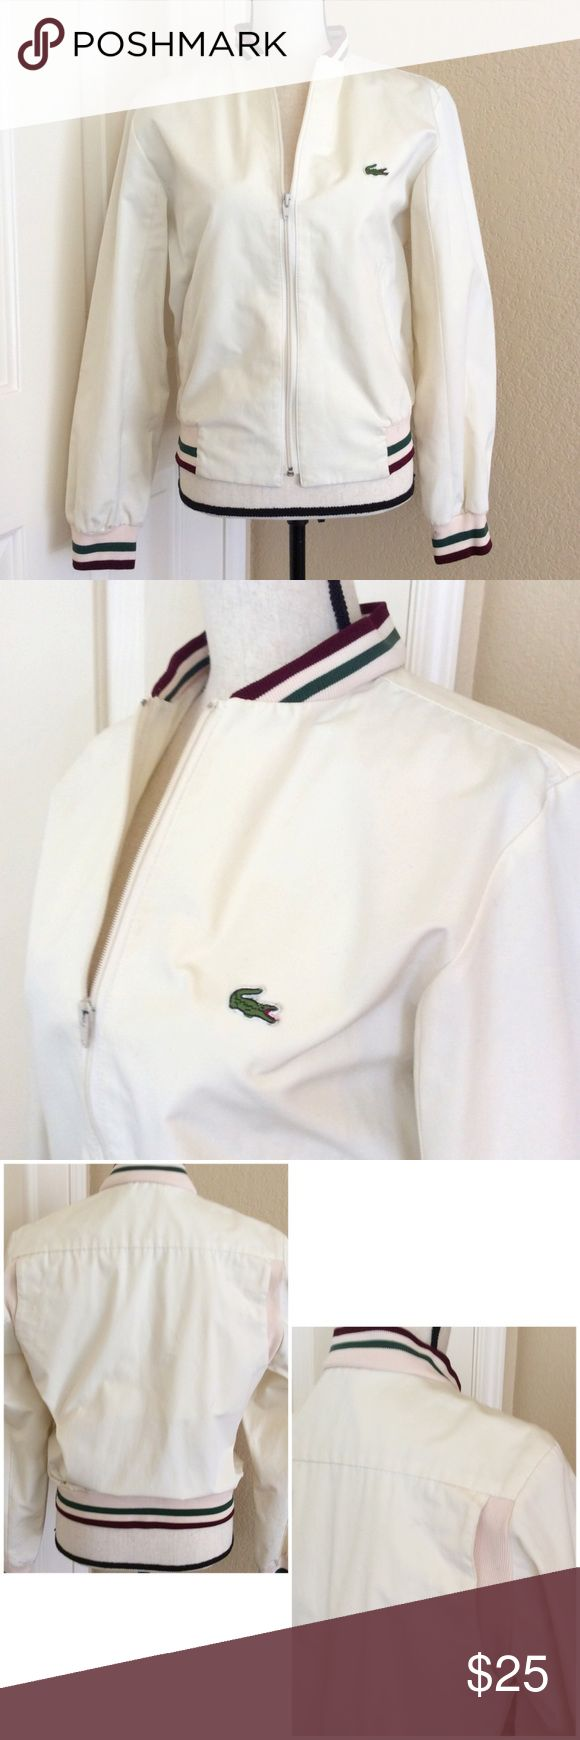 Vintage Lacoste bomber jacket 80's -maybe early 90's Cream Bomber style Windbreaker. Great condition. Has two little spots on bottom inner sleeve, pretty confident they will come out in wash. Men's size S, will fit a woman M comfortably. I will add measurements :) Lacoste Jackets & Coats